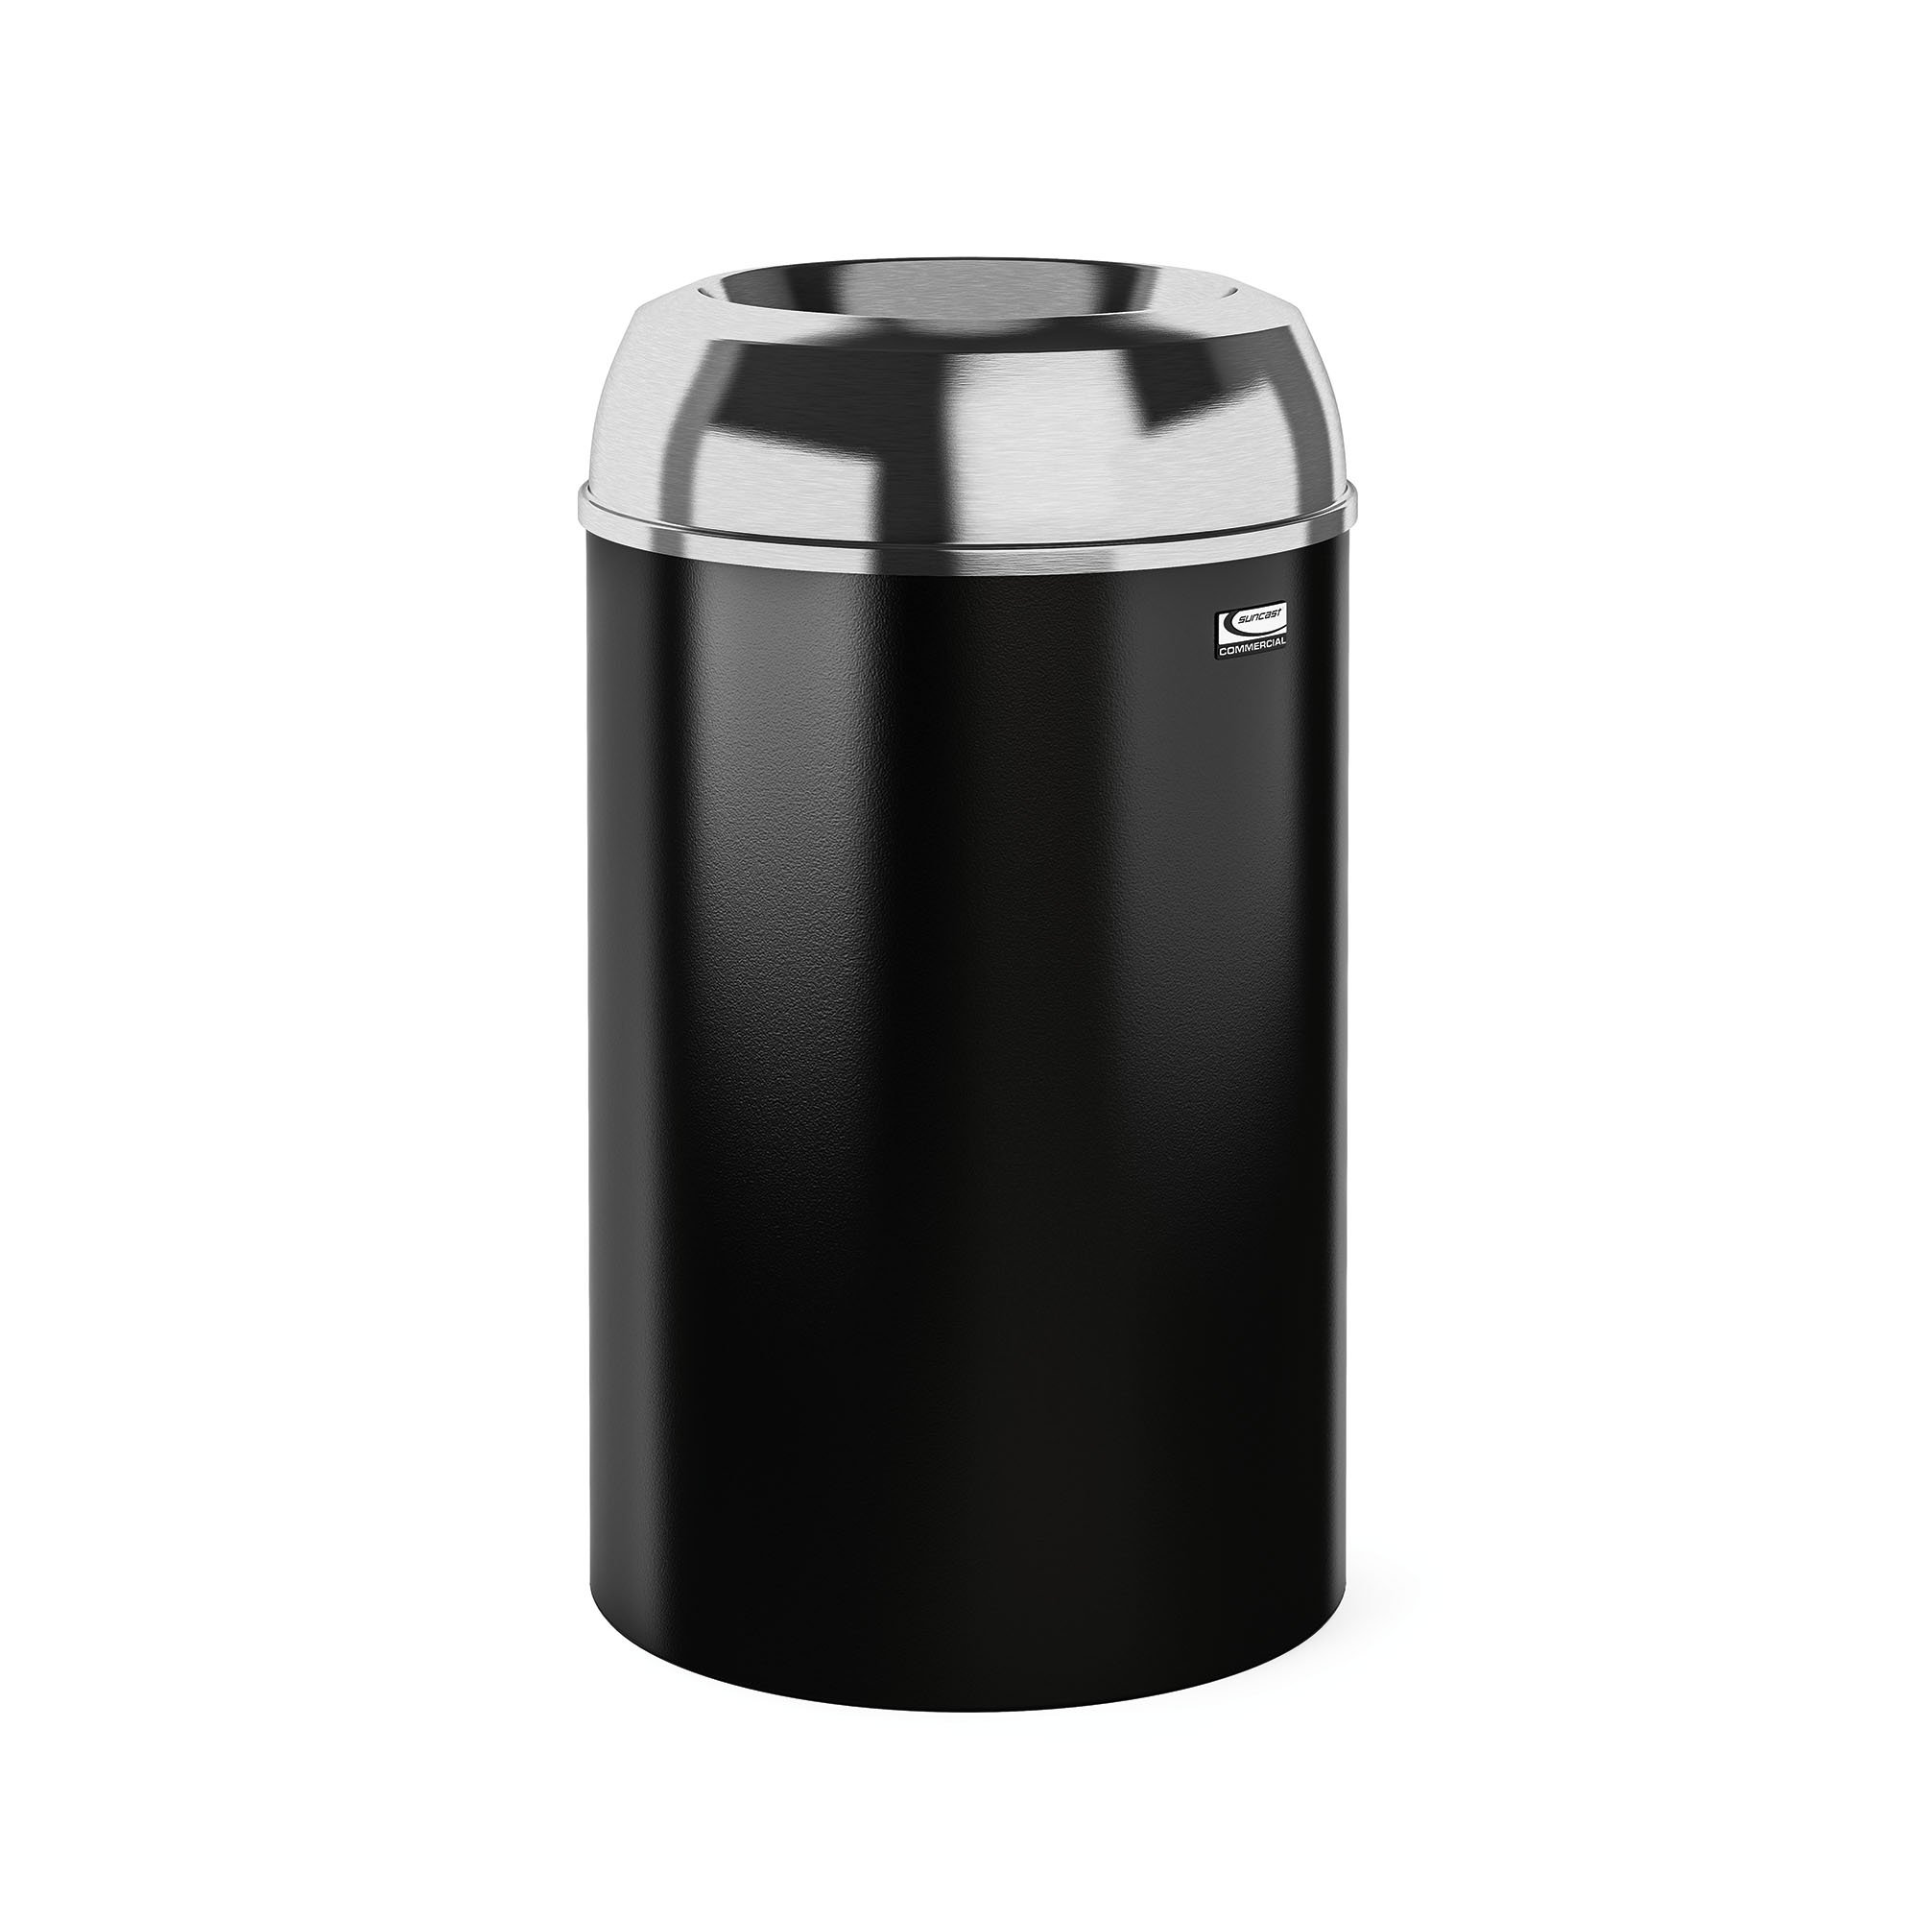 Suncast Commercial MTCIND3002 Indoor Decorative Trash Can, Aluminum Lid with Black Base, Silver/Black